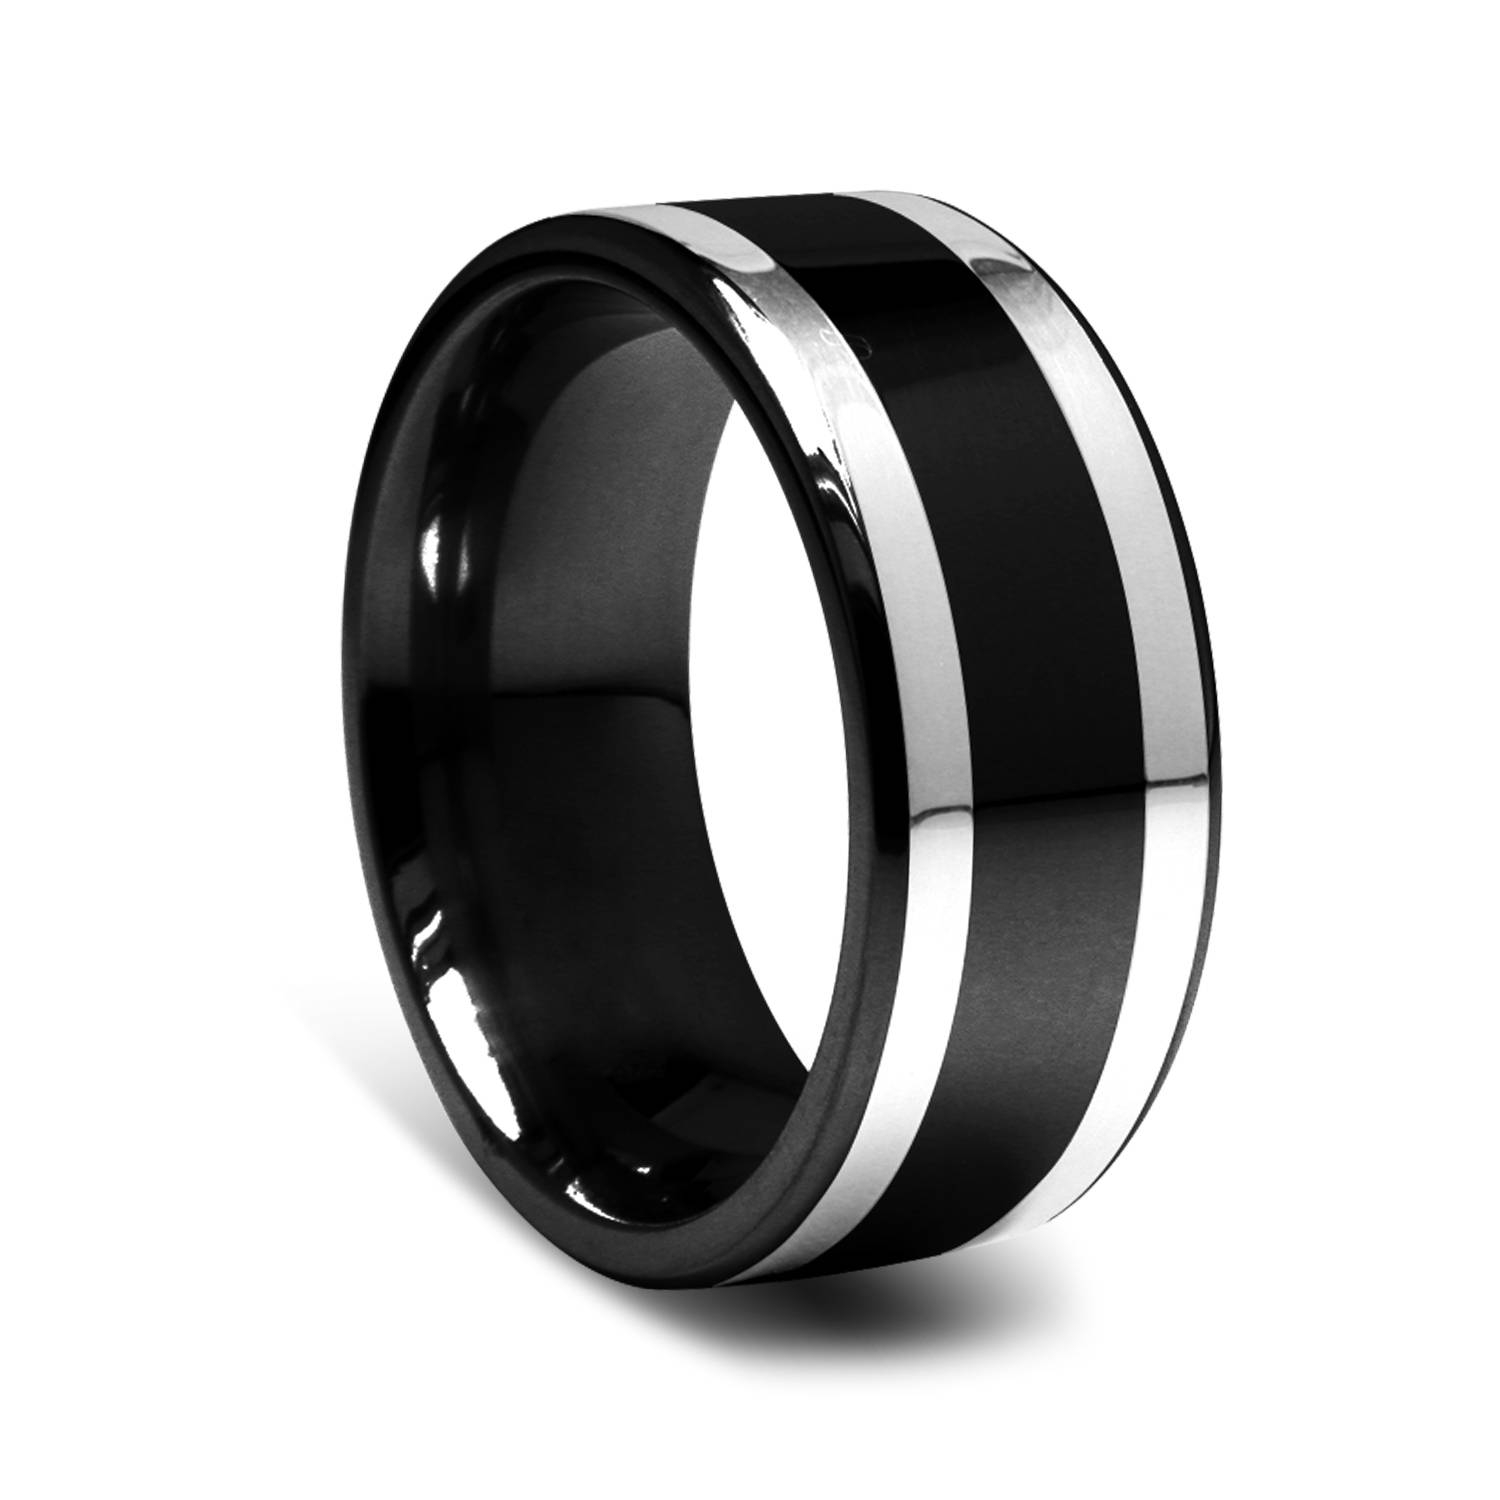 Black Diamond Ring With Gold Band The Elegant Black Diamond Pertaining To Men's Black And Red Wedding Bands (View 9 of 15)